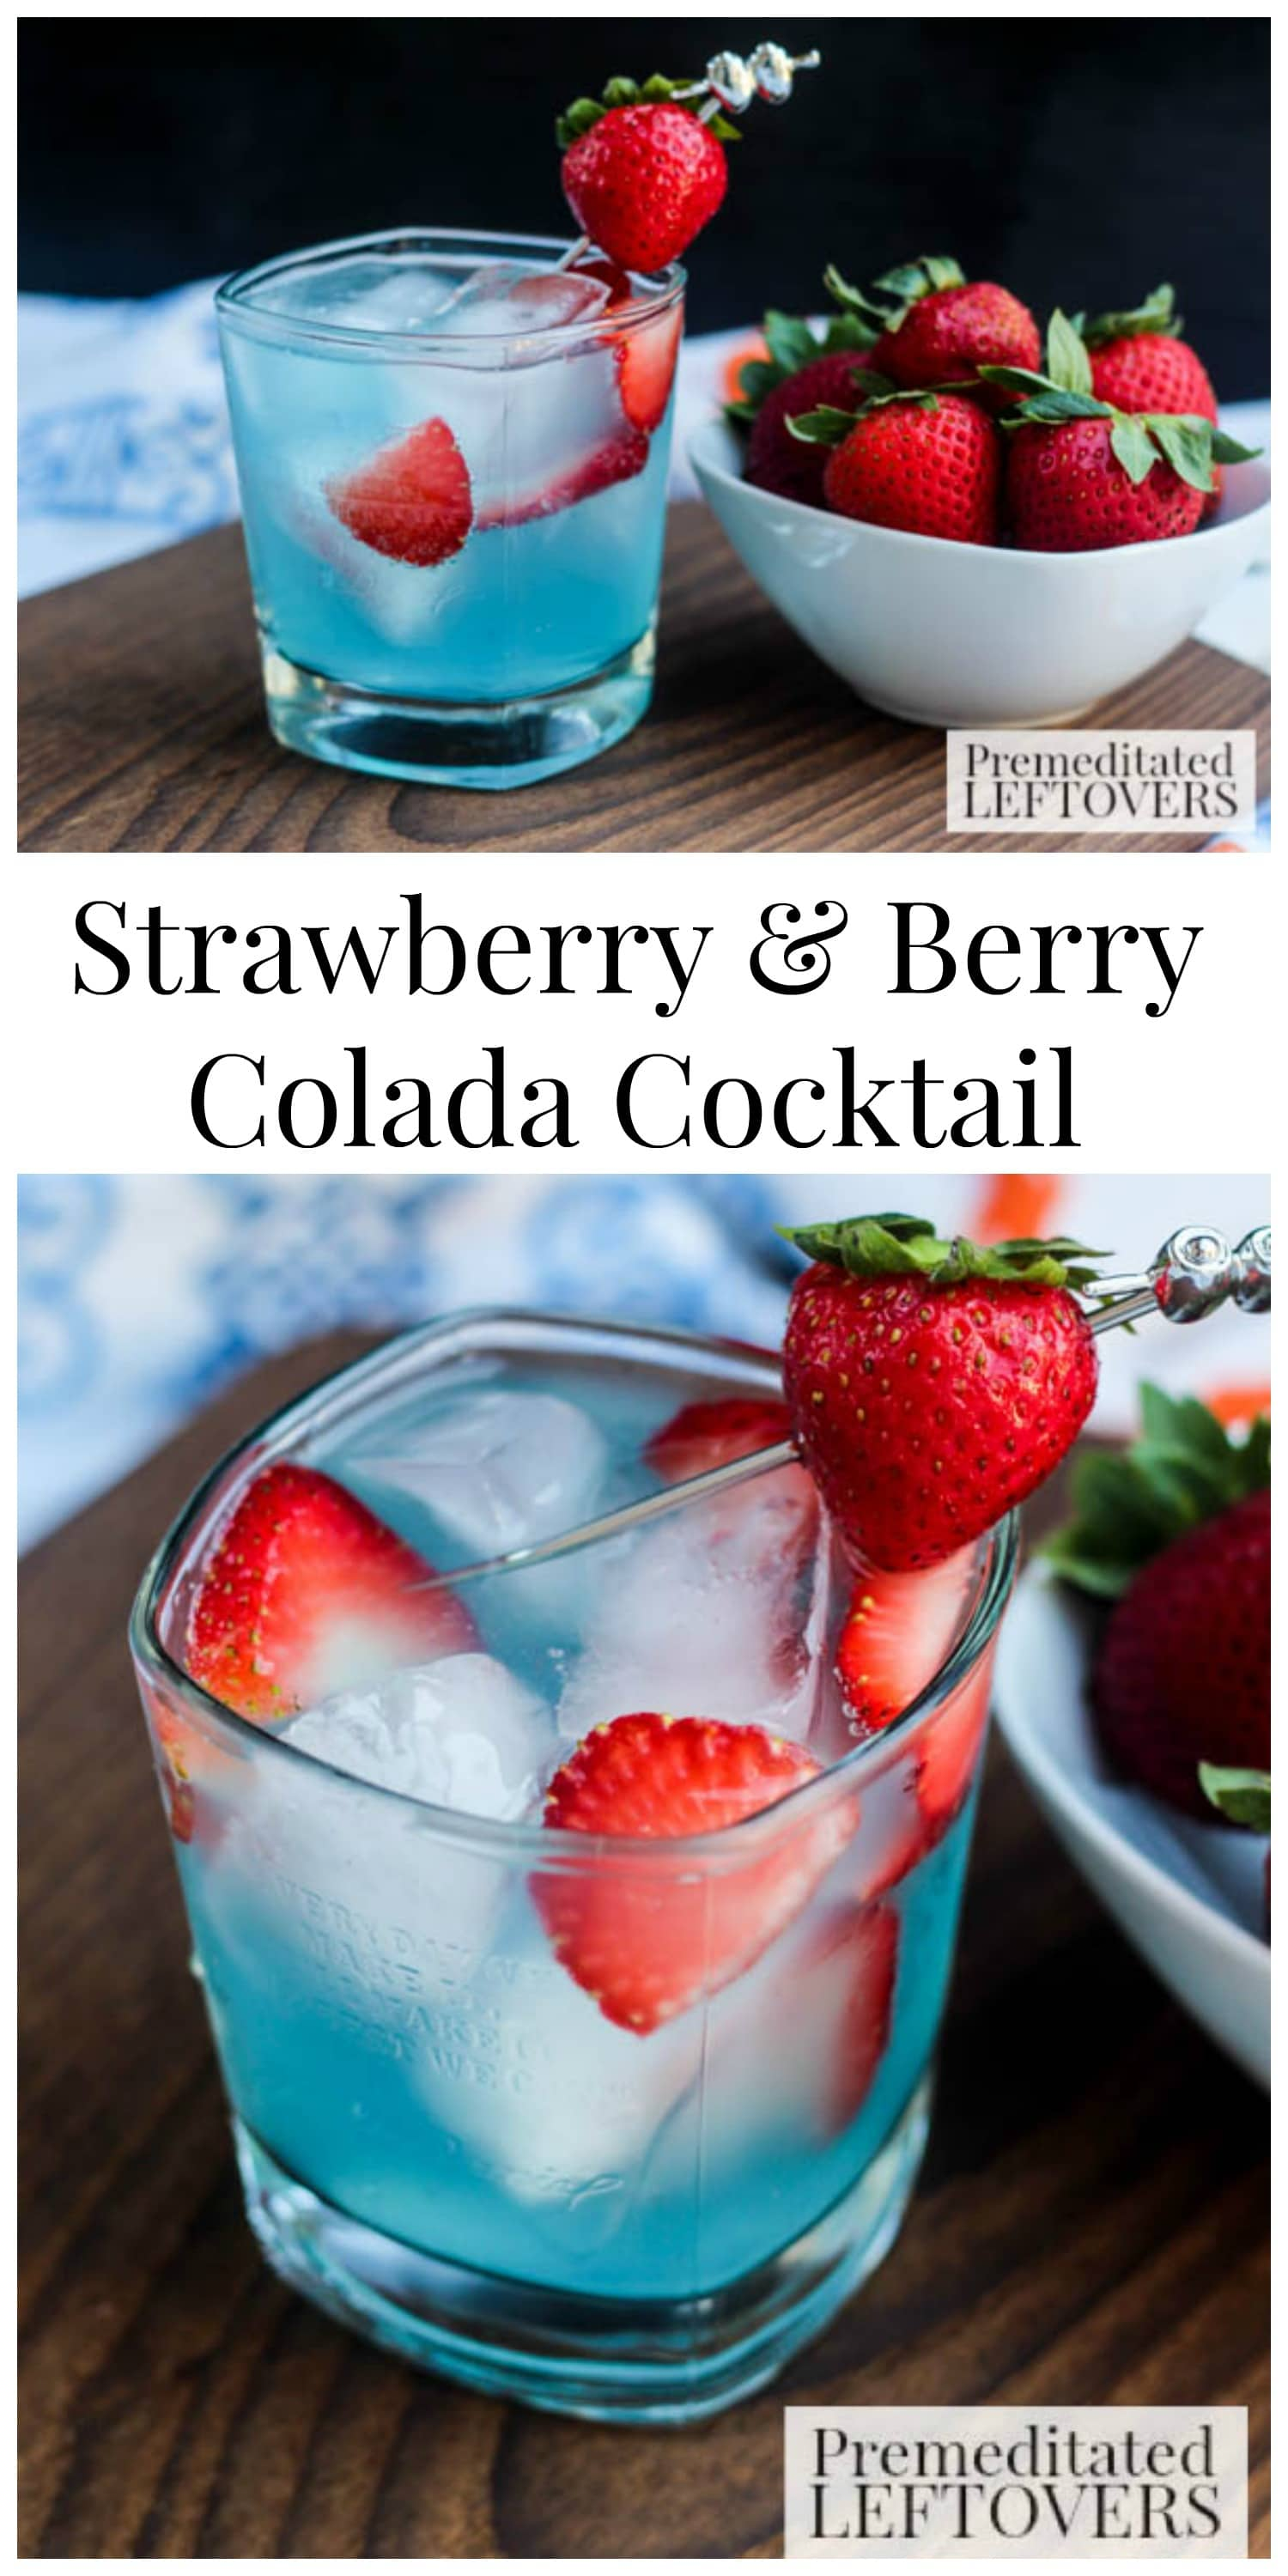 Easy Strawberry & Berry Colada Cocktail Recipe